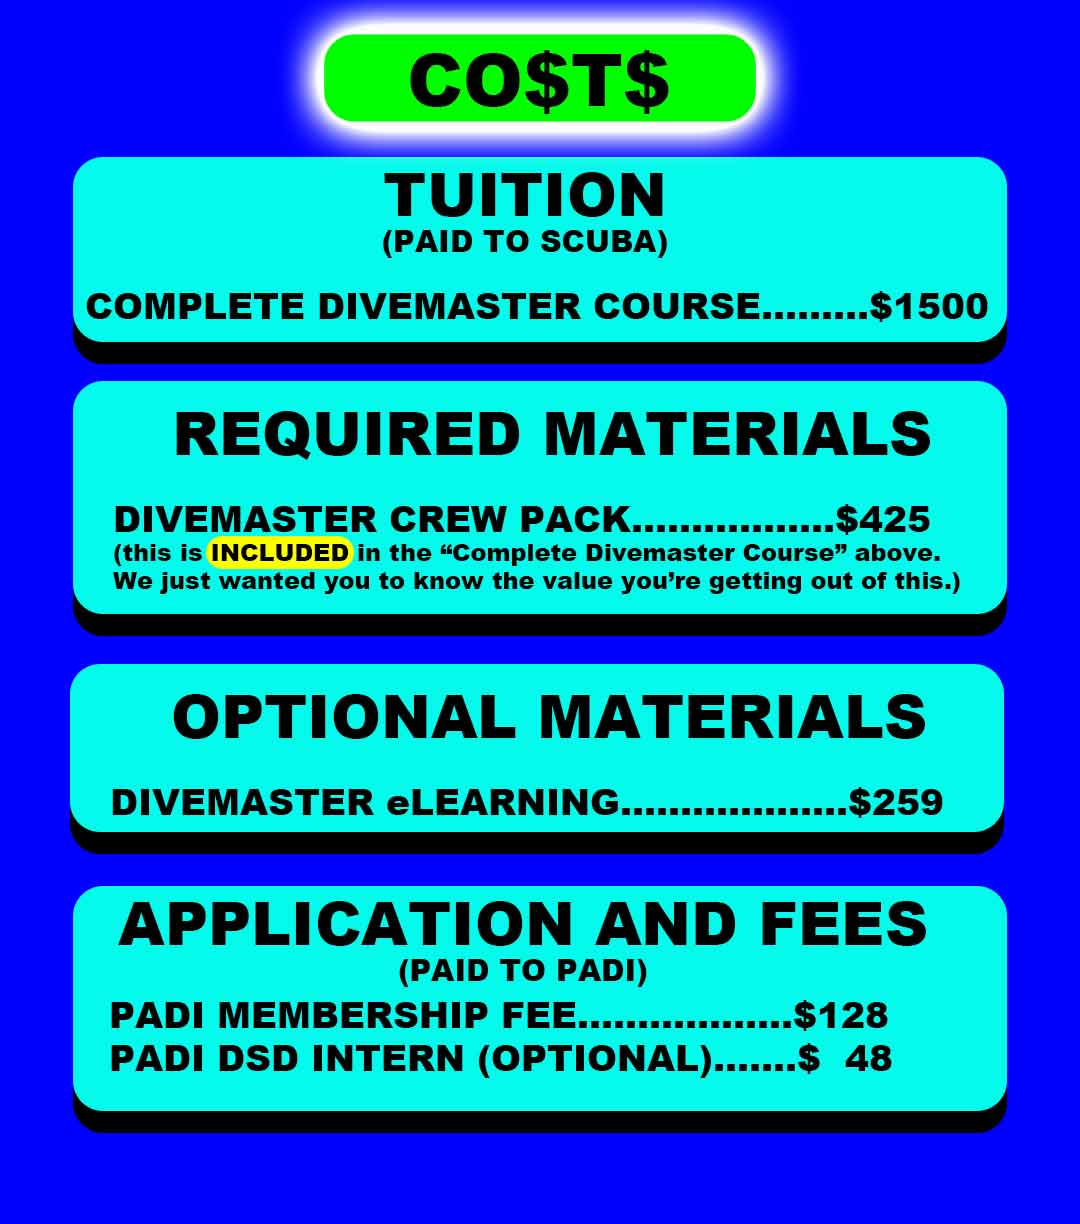 Price for Divemaster Course with SCUBA